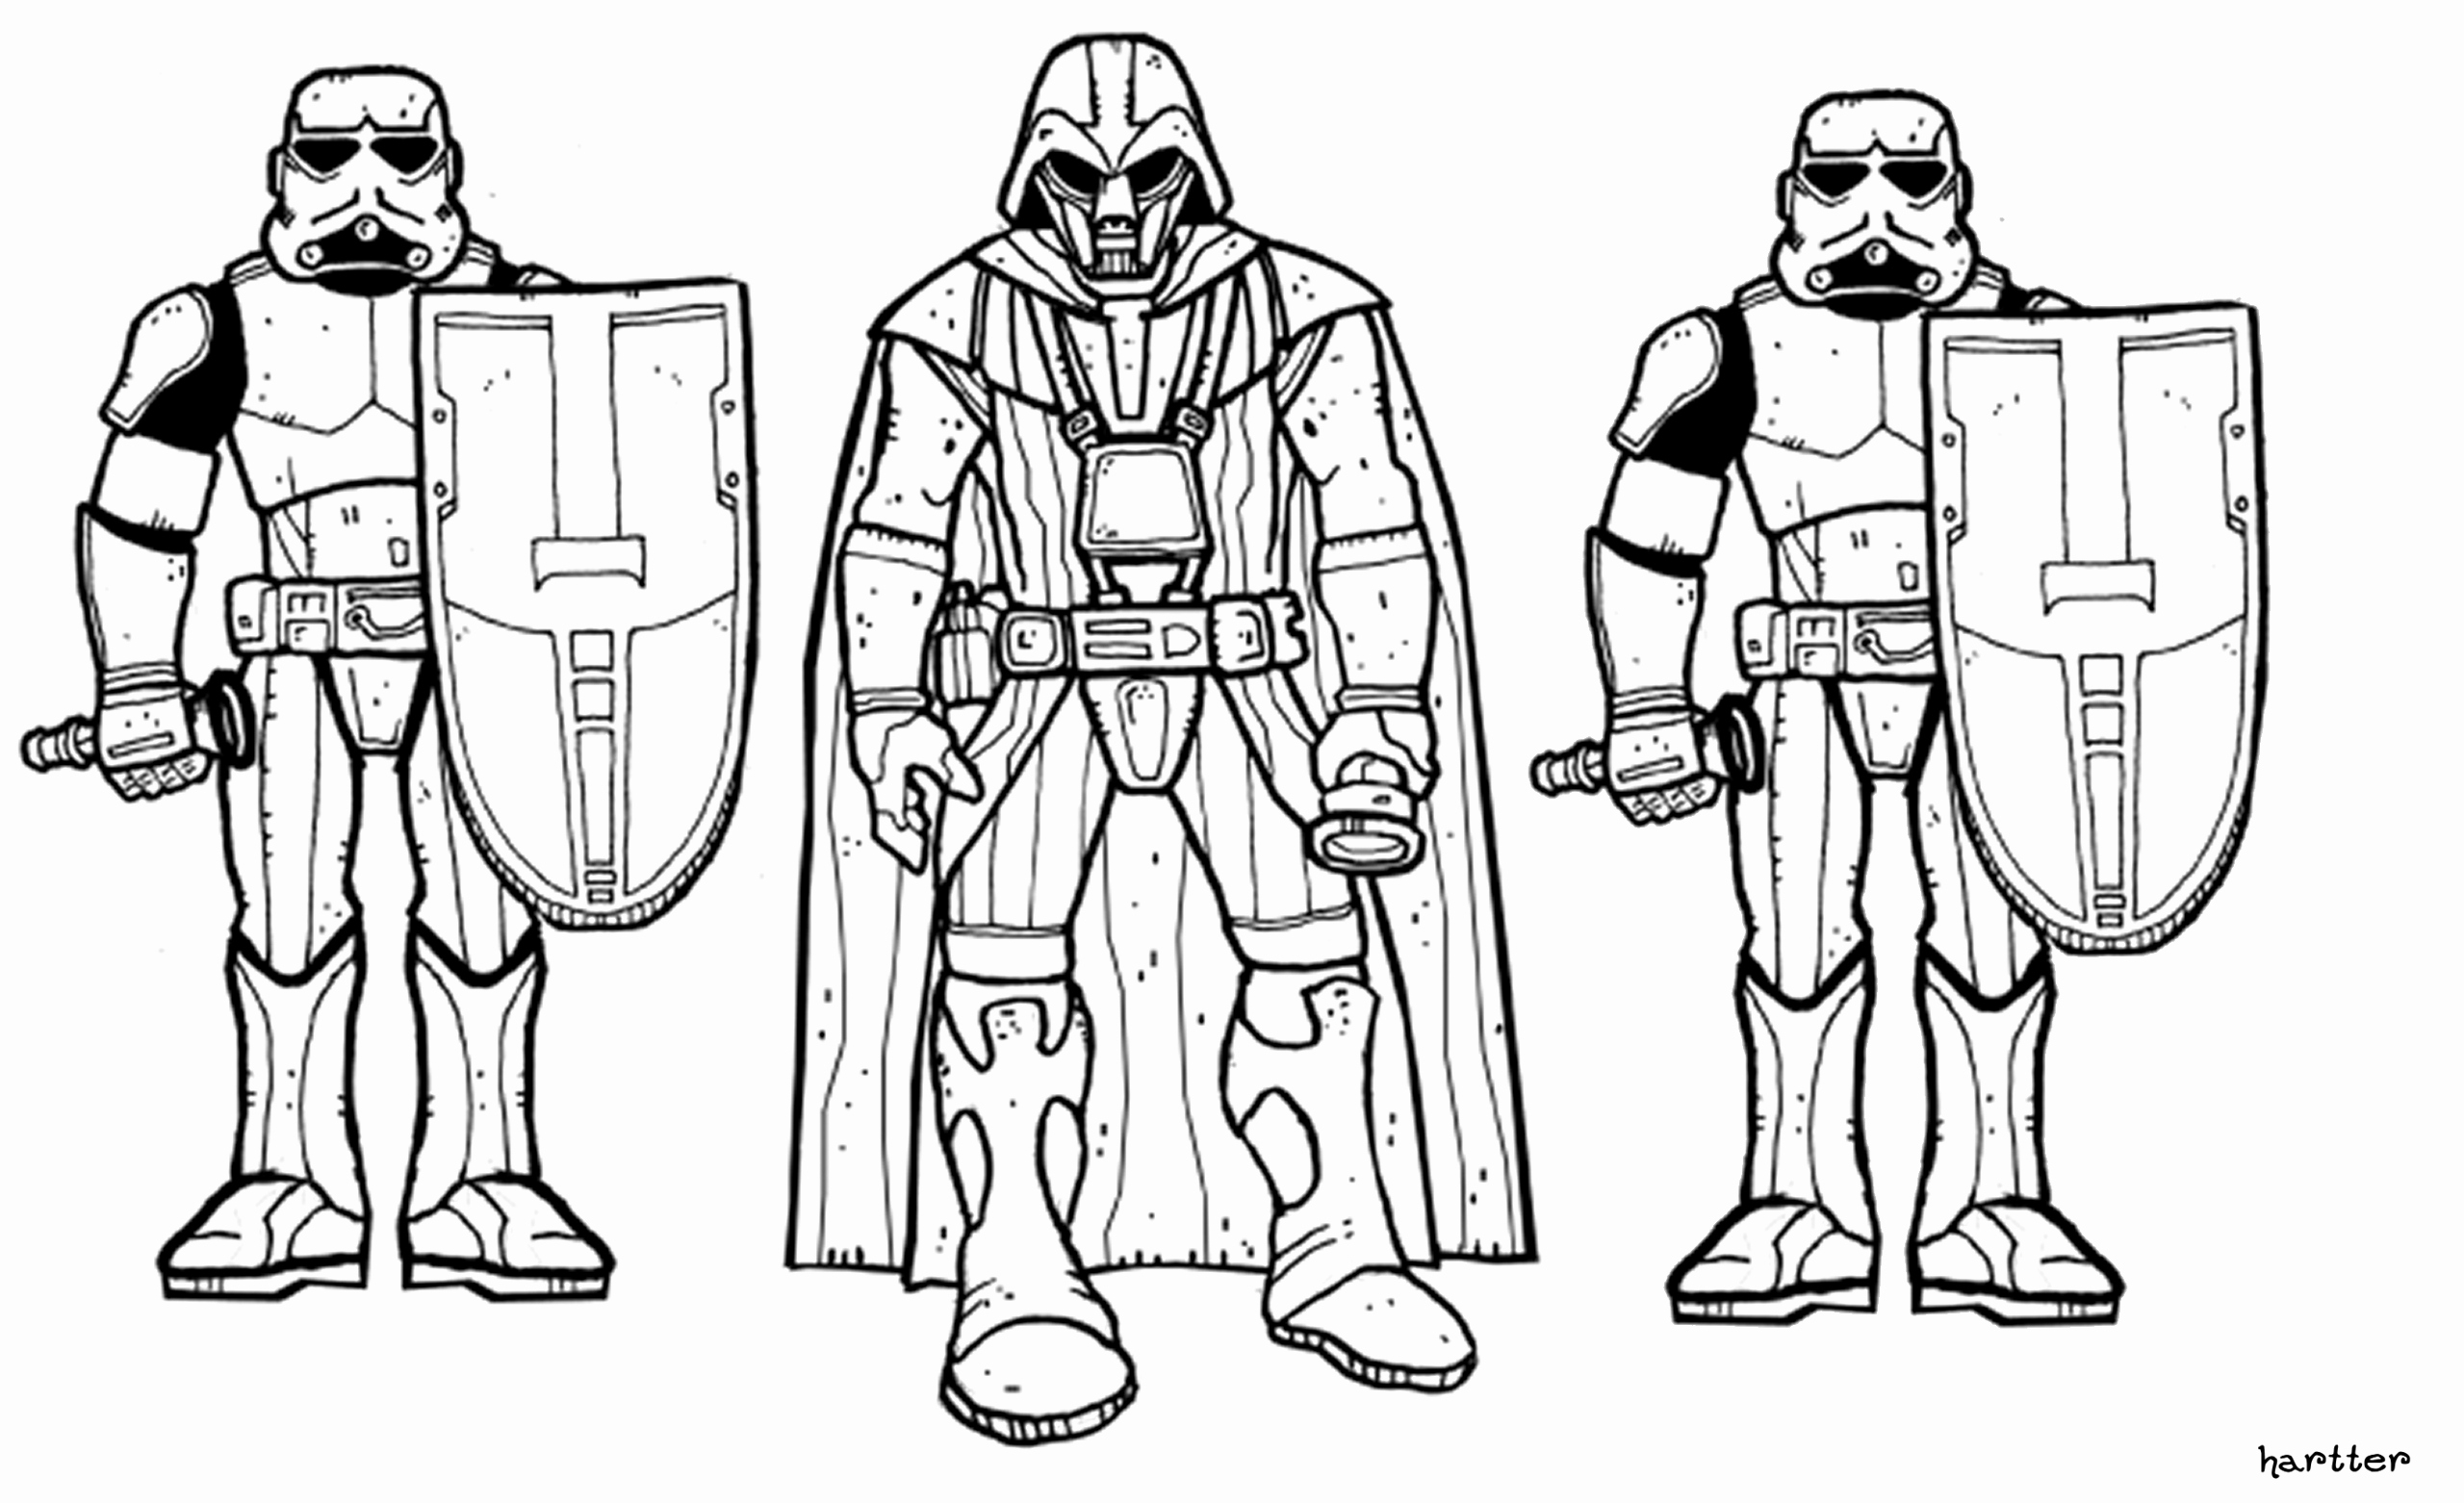 Free Coloring Pages Star Wars the Clone Wars Gallery Coloring to Print Of Coloring Pages Of Star Wars Free Coloring Pages Star Wars Printable